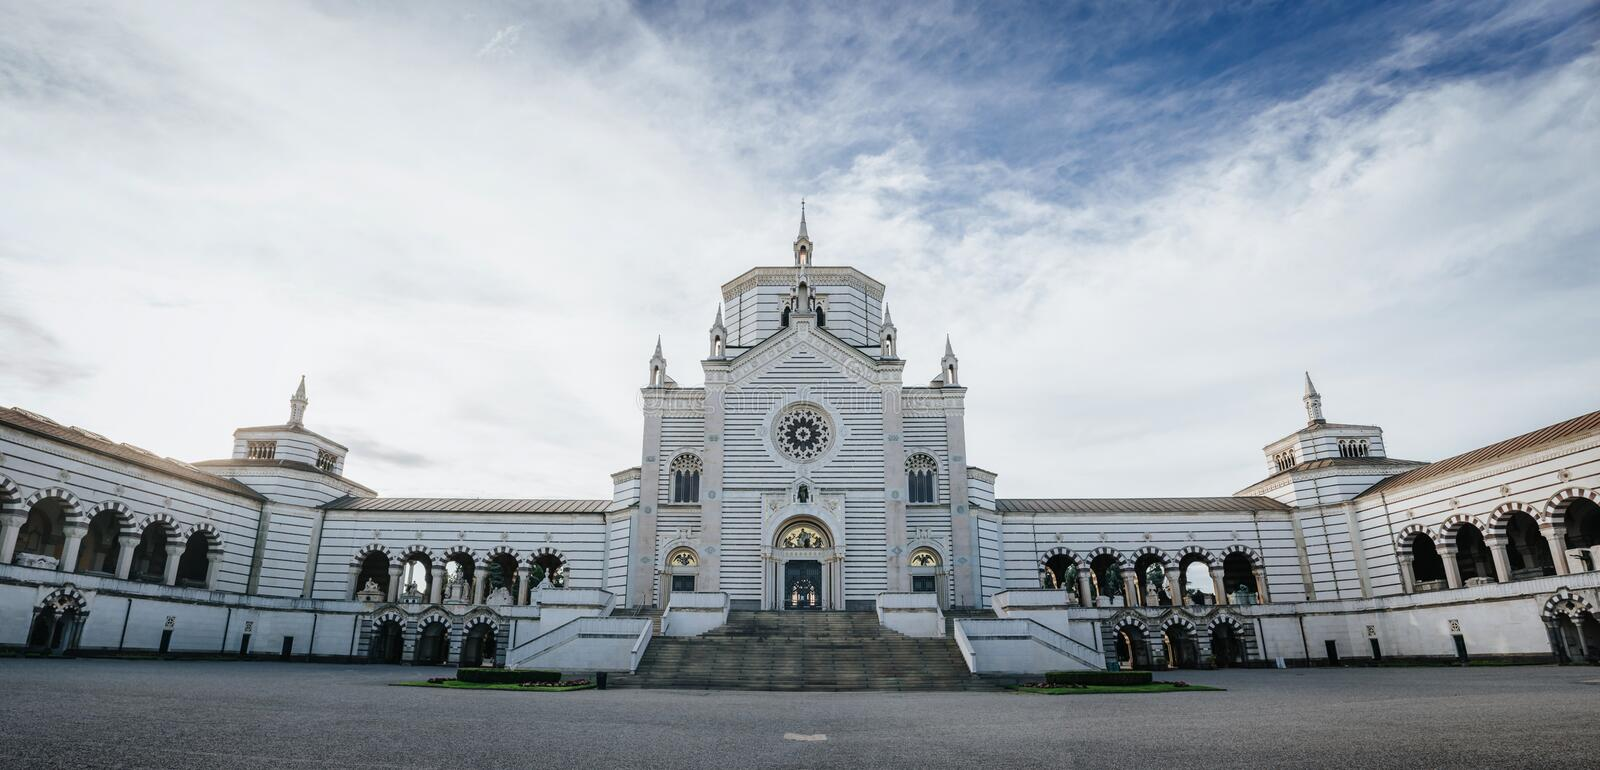 Famedio chapel facade at the Monumental Cemetery (Cimitero Monumentale), one of the main landmarks and tourist attractions af. Milan, Italy. Scenic horizontal stock image